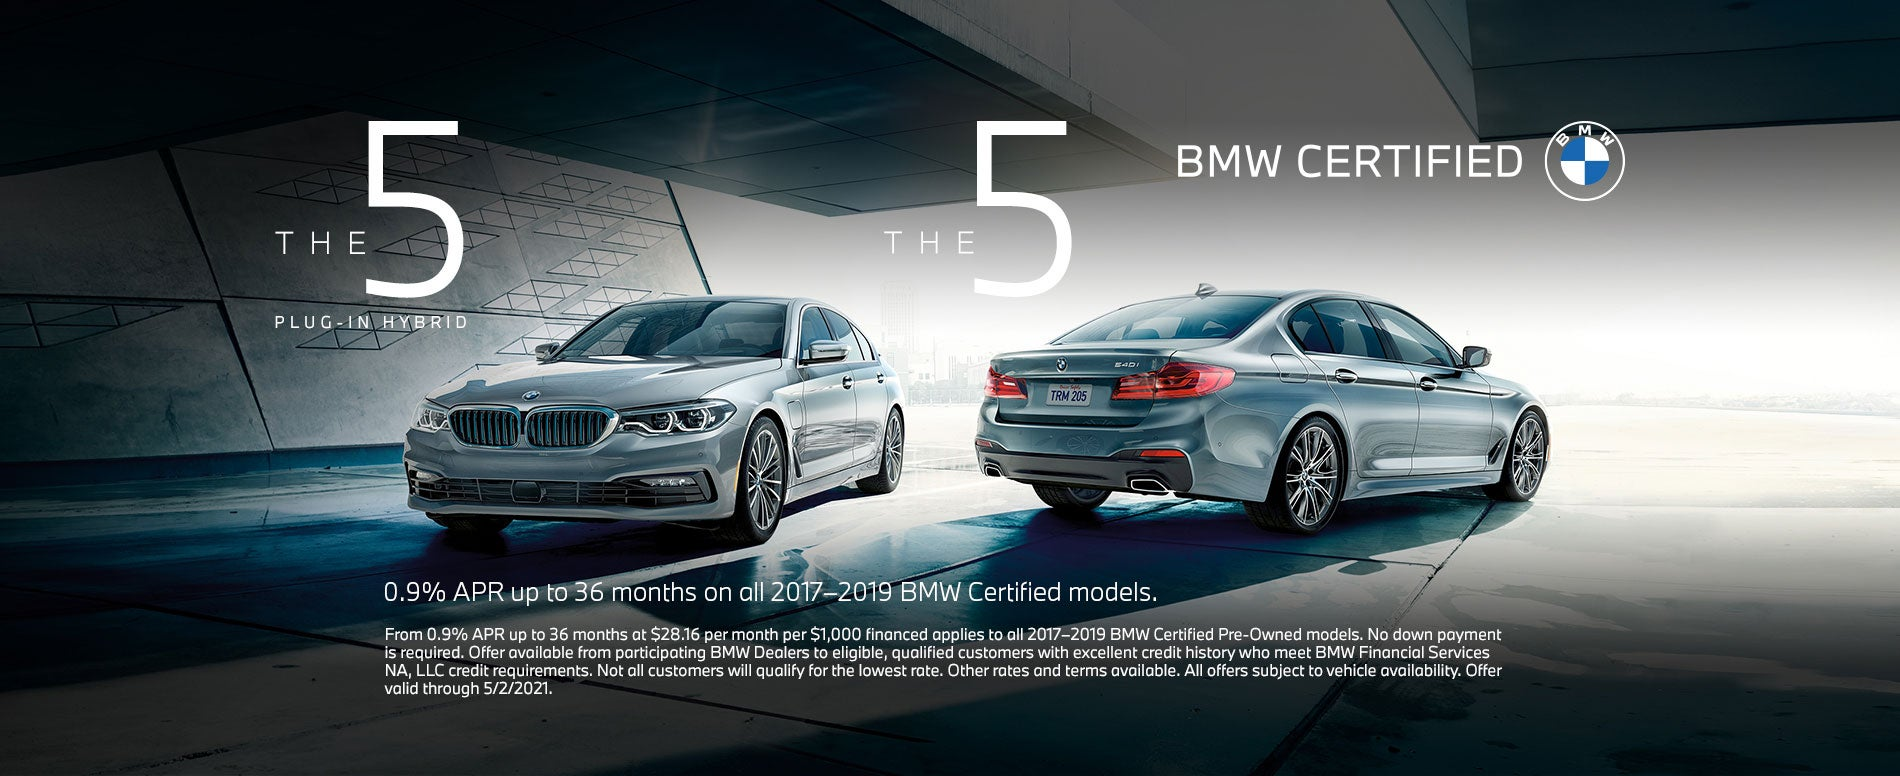 Bmw Certified Pre Owned Offers At Flemington Bmw